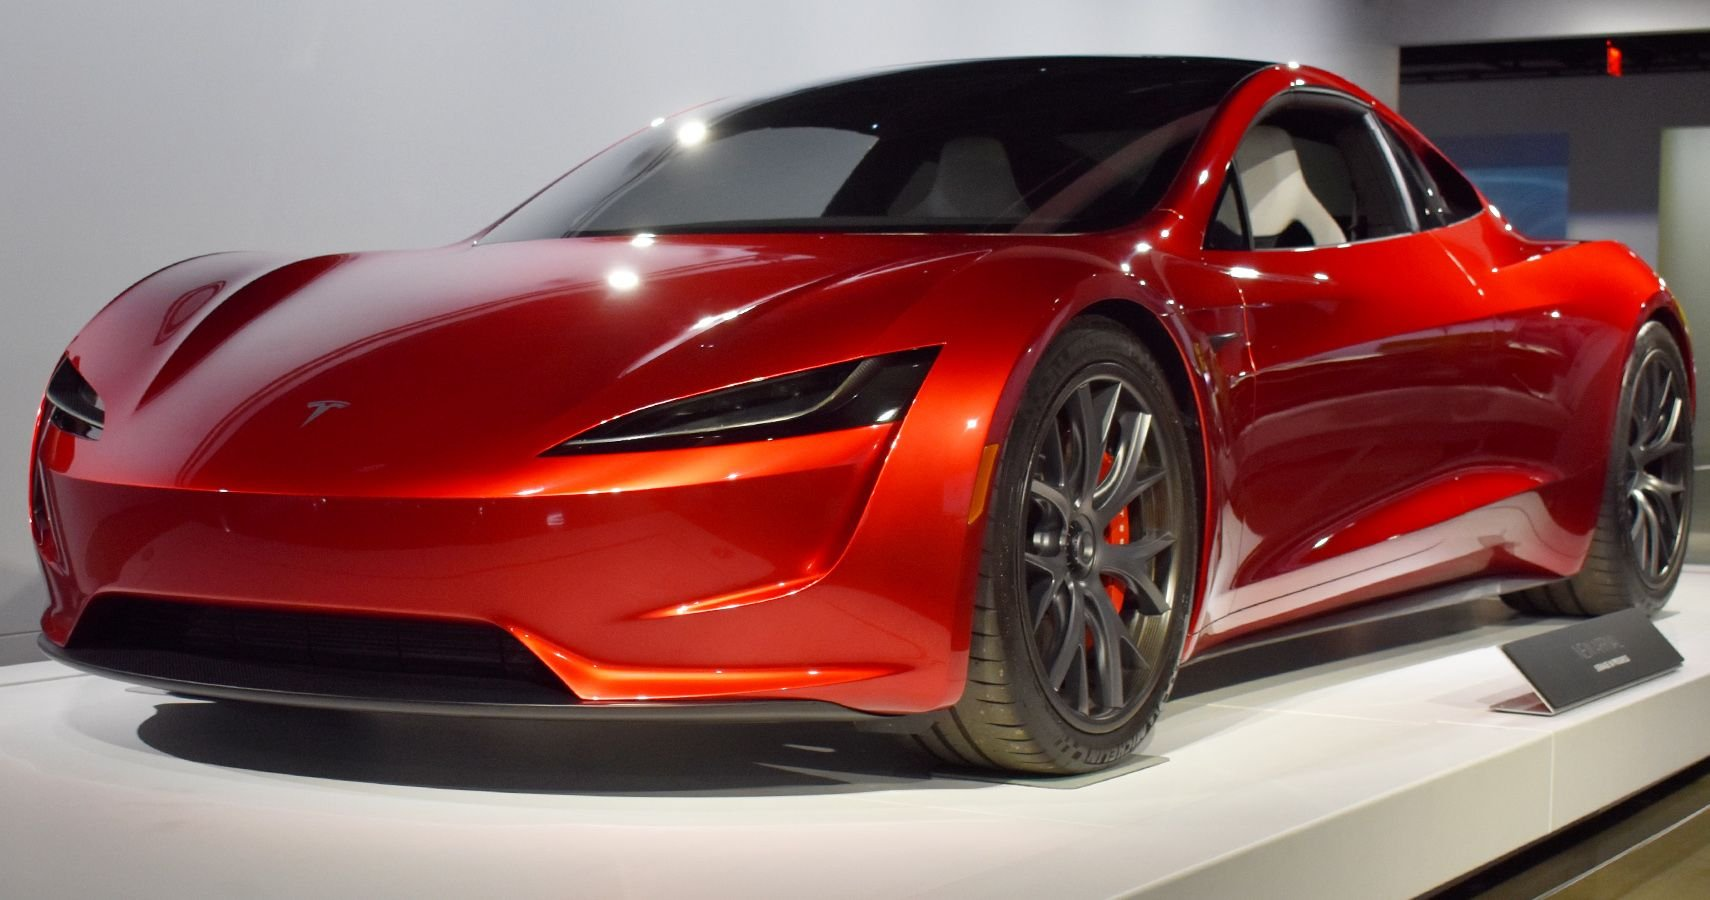 EXCLUSIVE: First Shots Of The New Tesla Roadster At The Petersen Museum